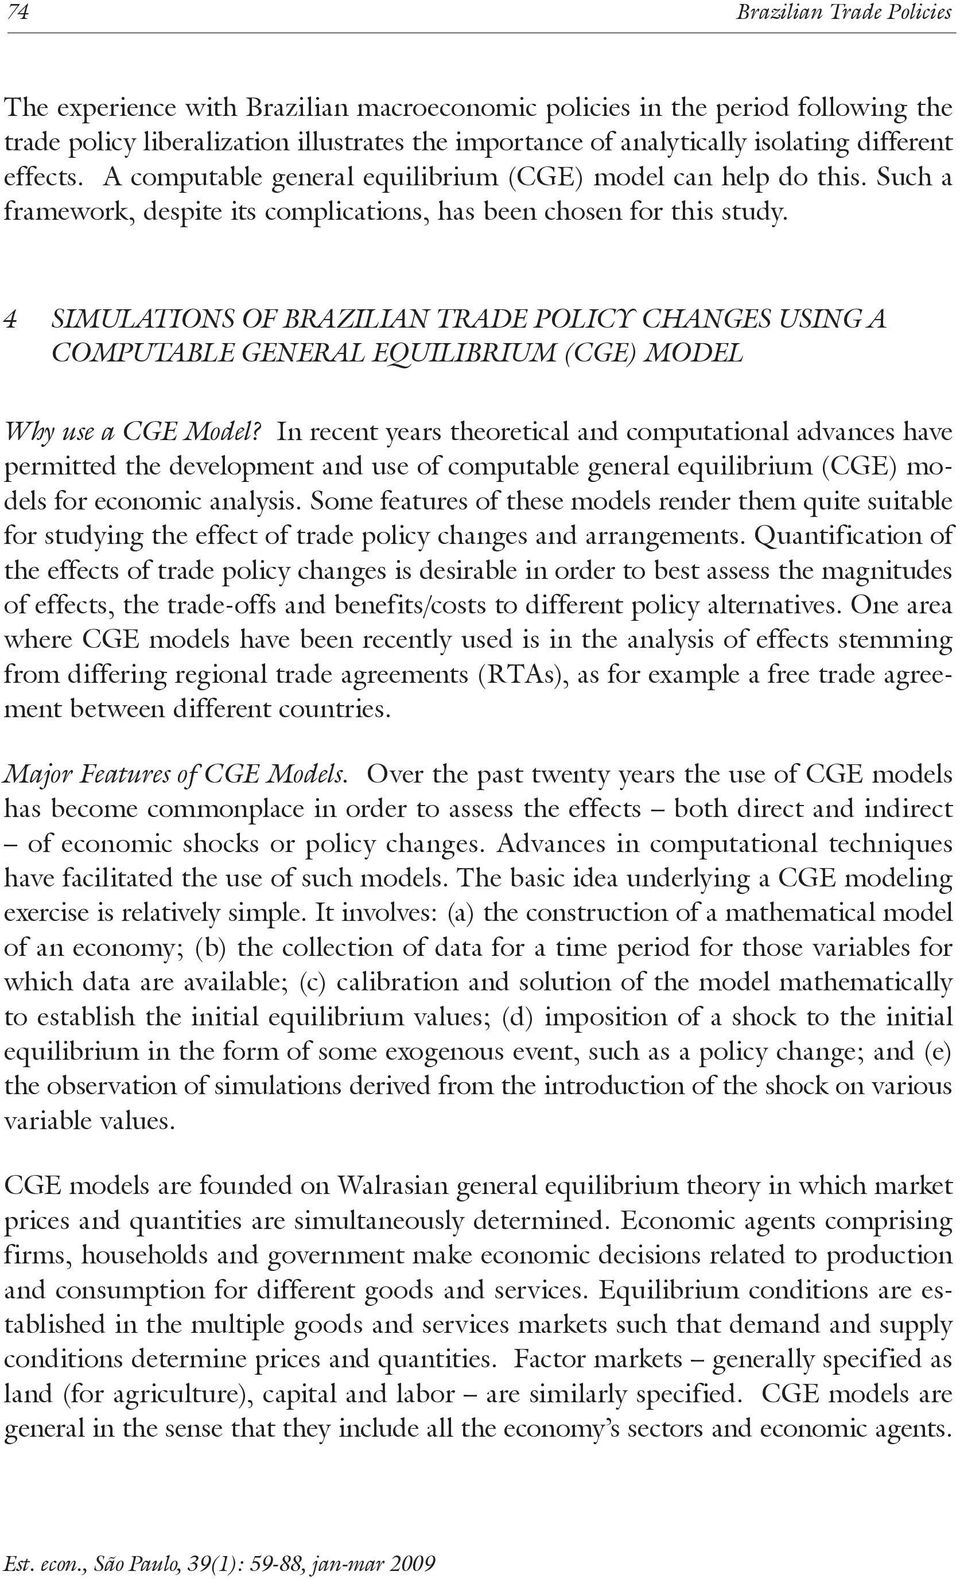 4 Simulations of Brazilian Trade Policy Changes using a Computable General Equilibrium (CGE) Model Why use a CGE Model?